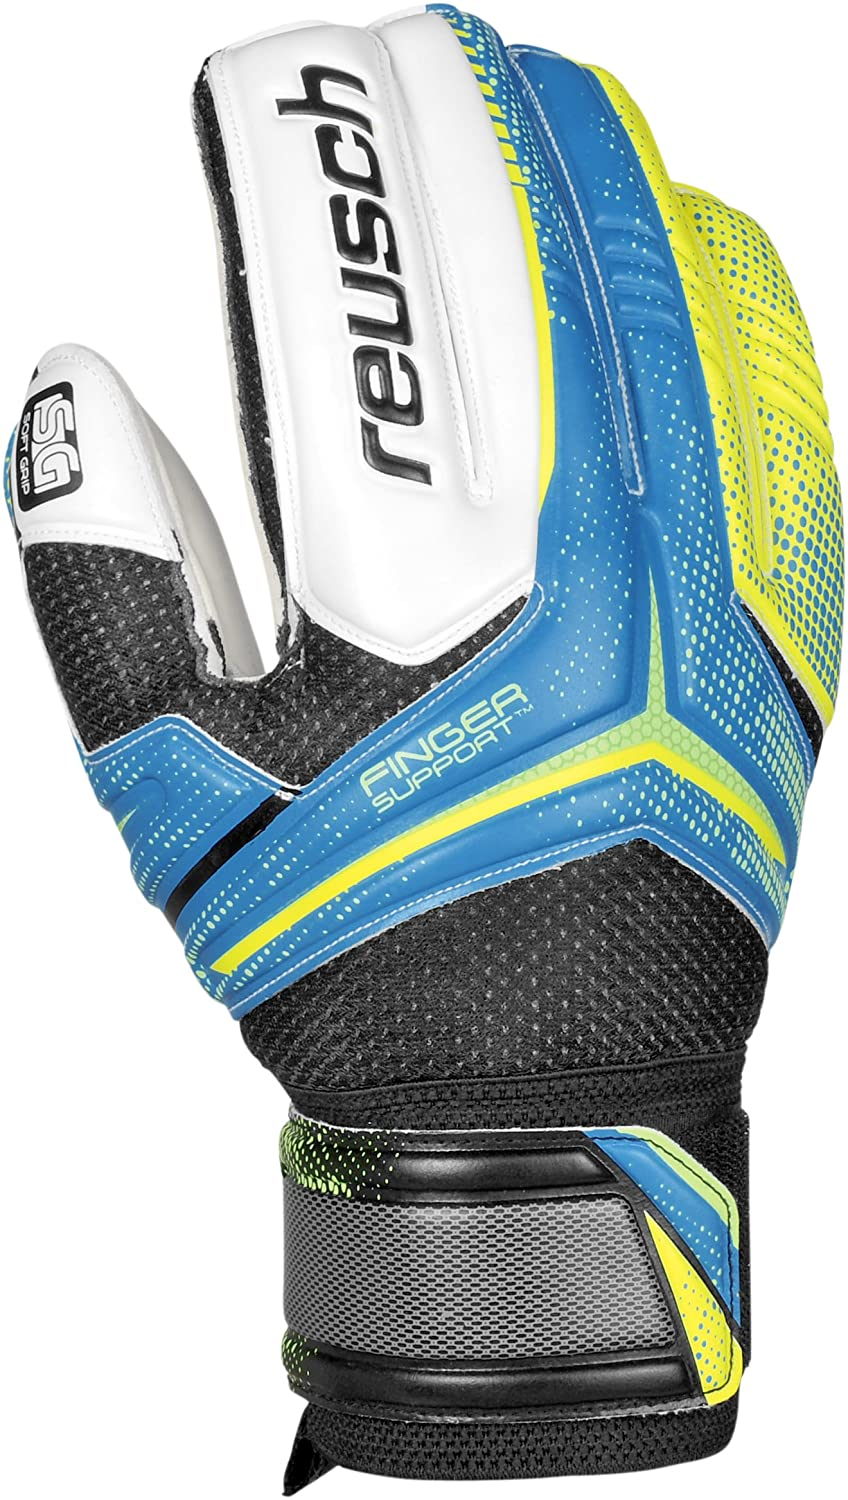 The Best Soccer Goalie Gloves 2